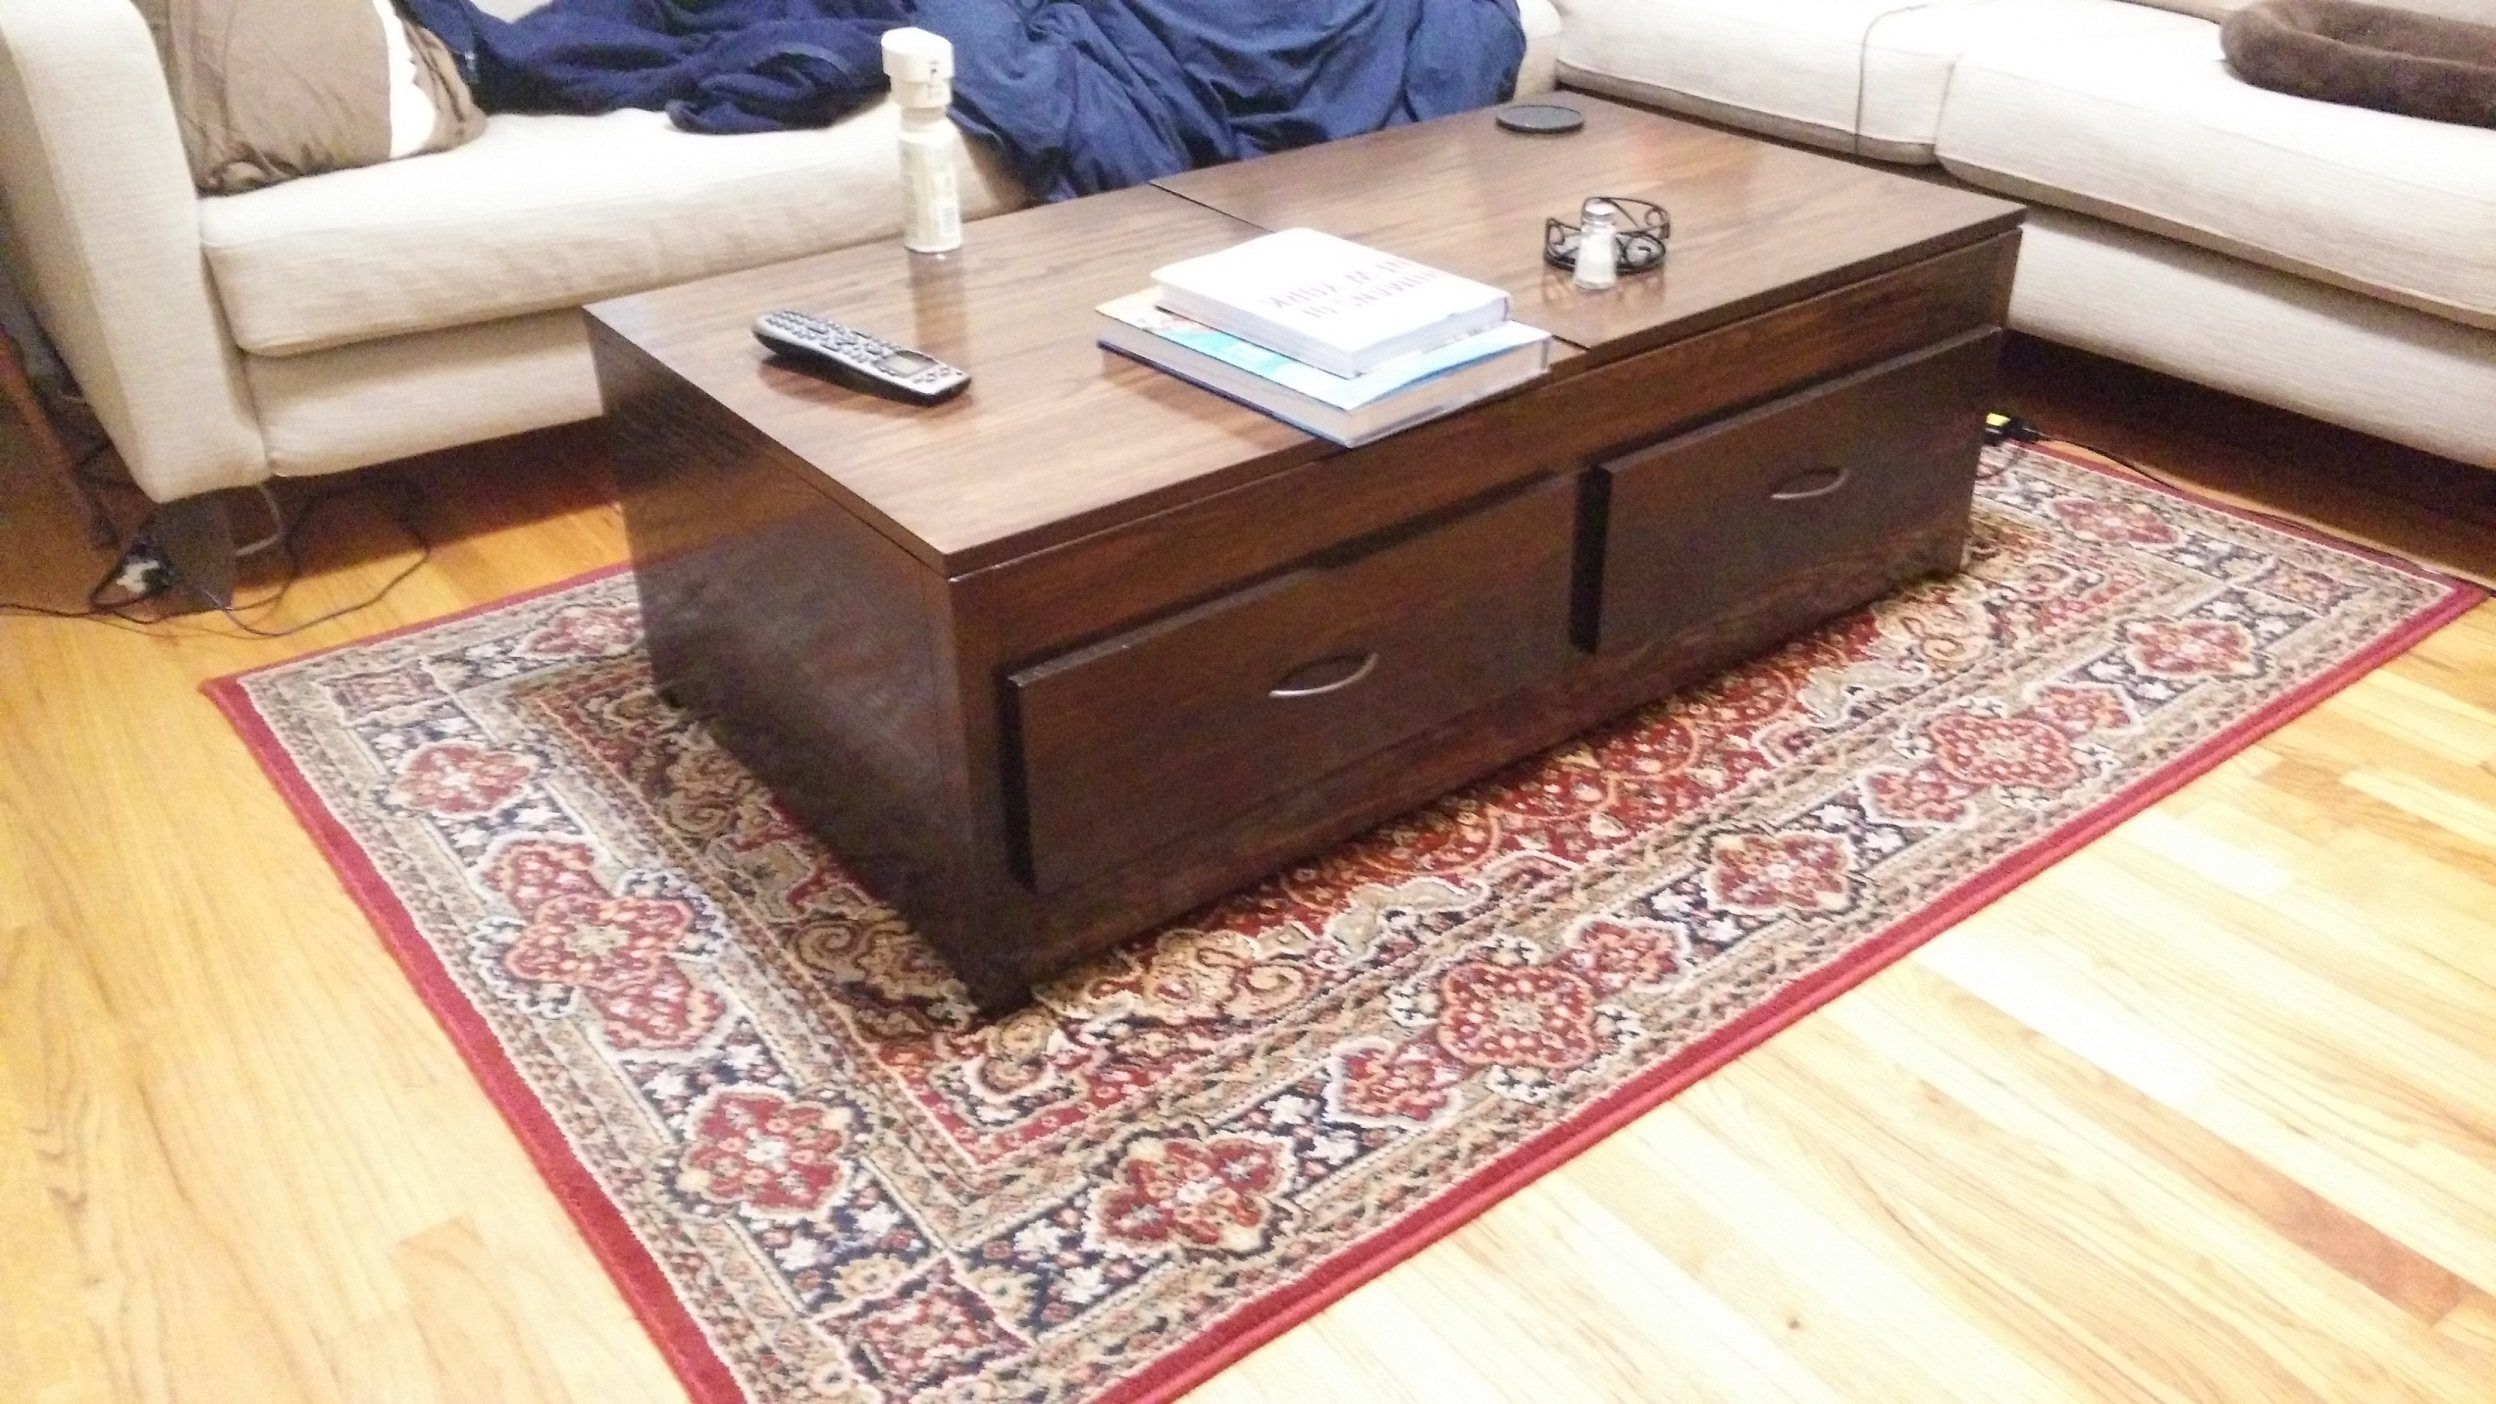 How To Measure For A Coffee Table Coffee Table Design Ideas